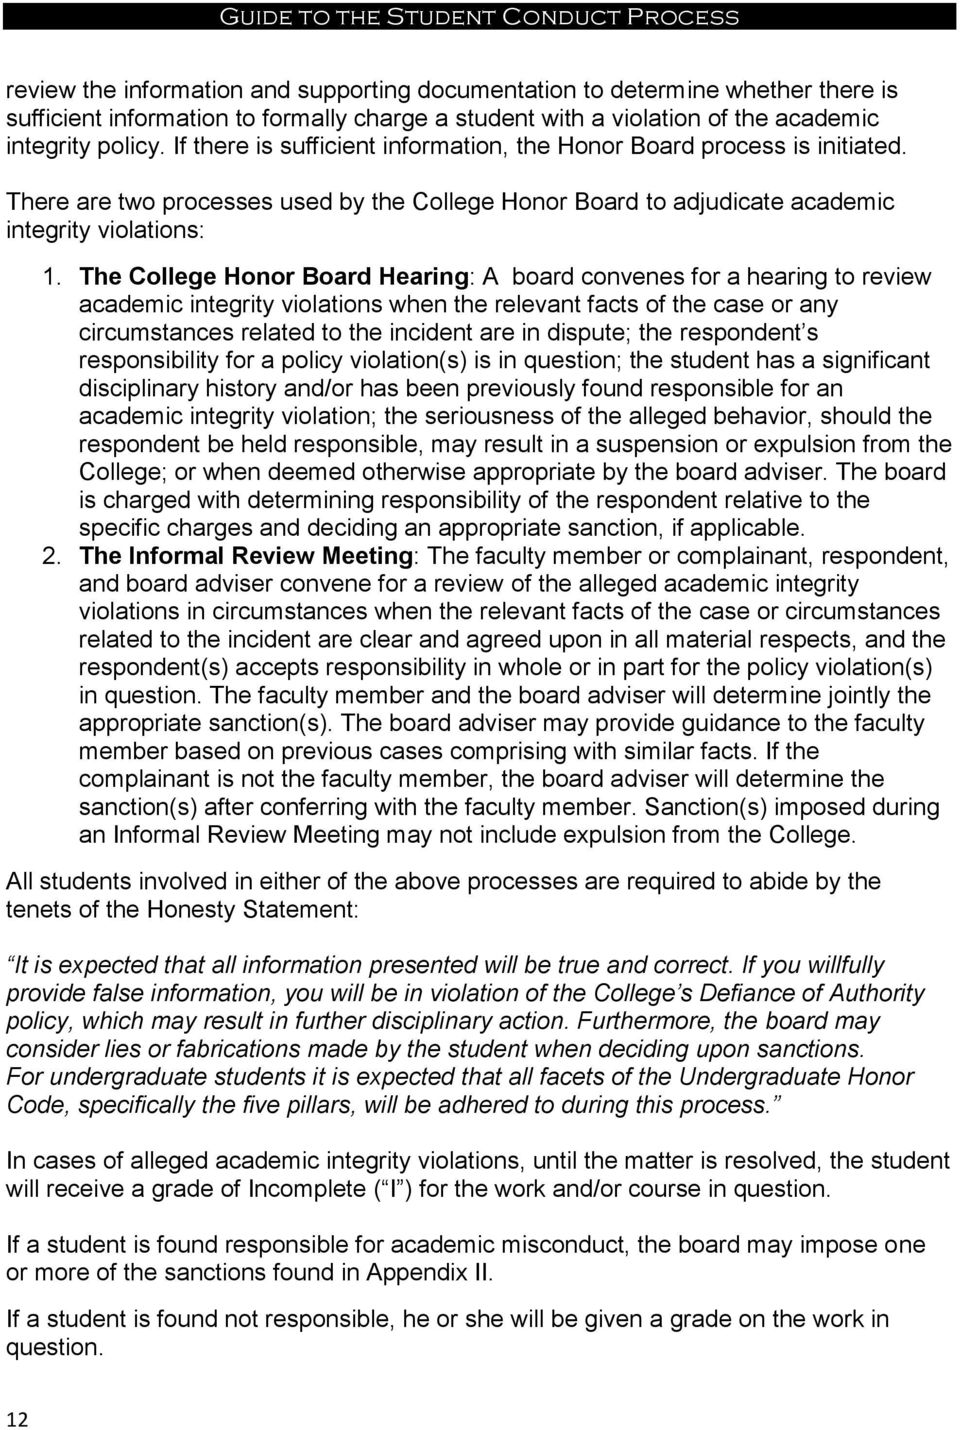 The College Honor Board Hearing: A board convenes for a hearing to review academic integrity violations when the relevant facts of the case or any circumstances related to the incident are in